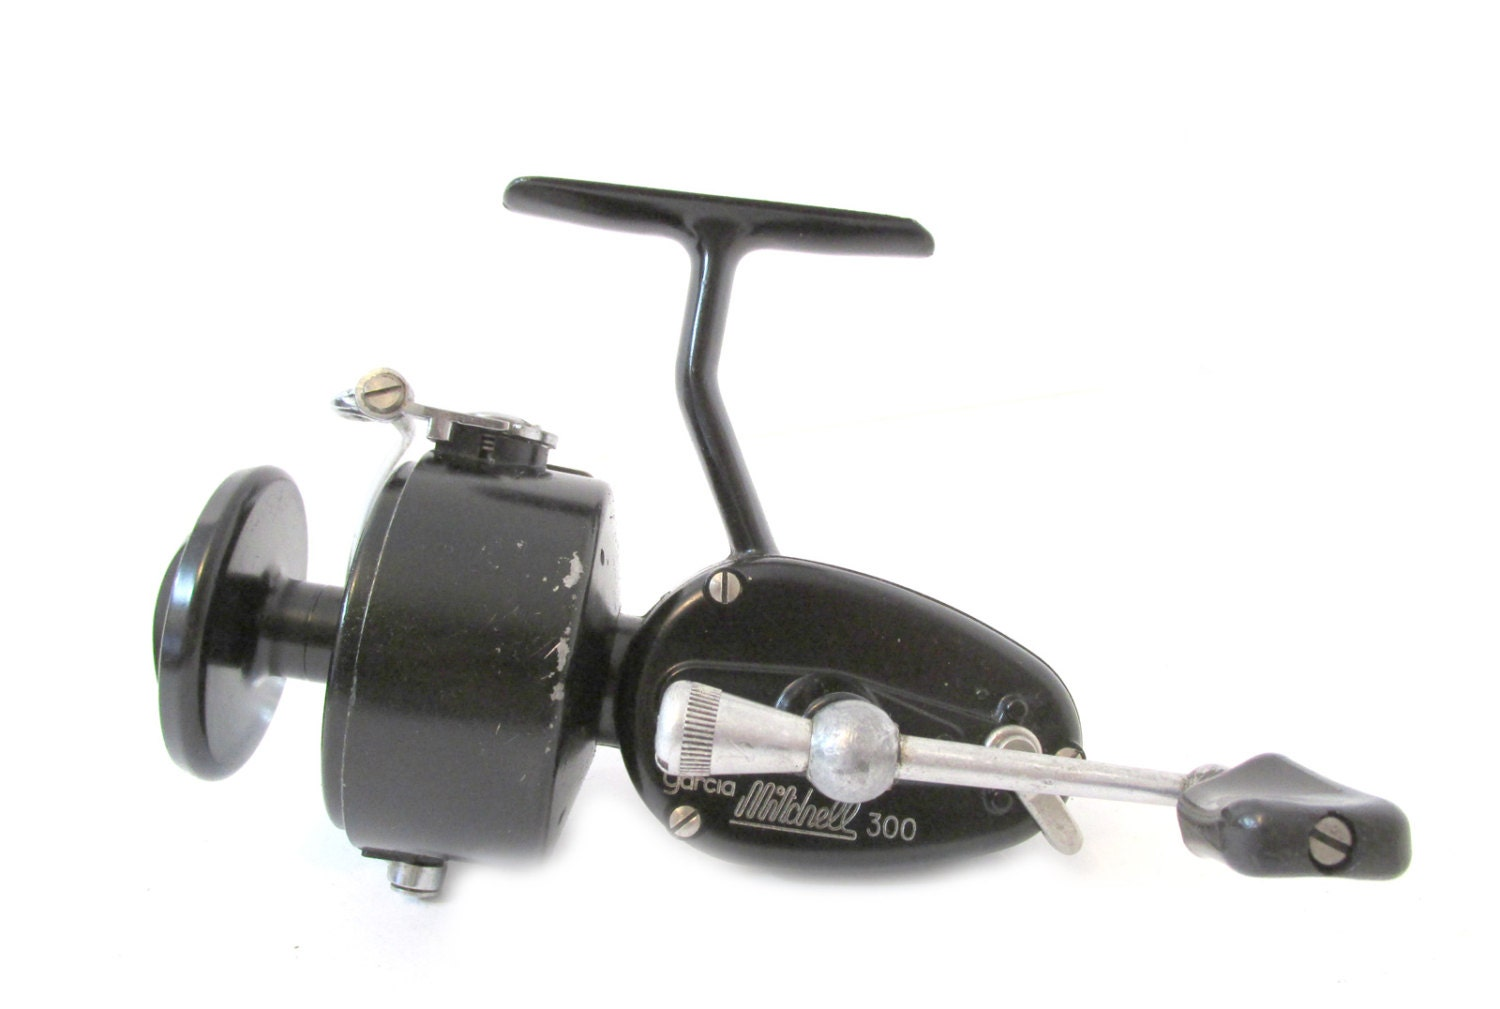 Garcia mitchell 300 spinning reel vintage old fishing reel for Vintage fishing reels